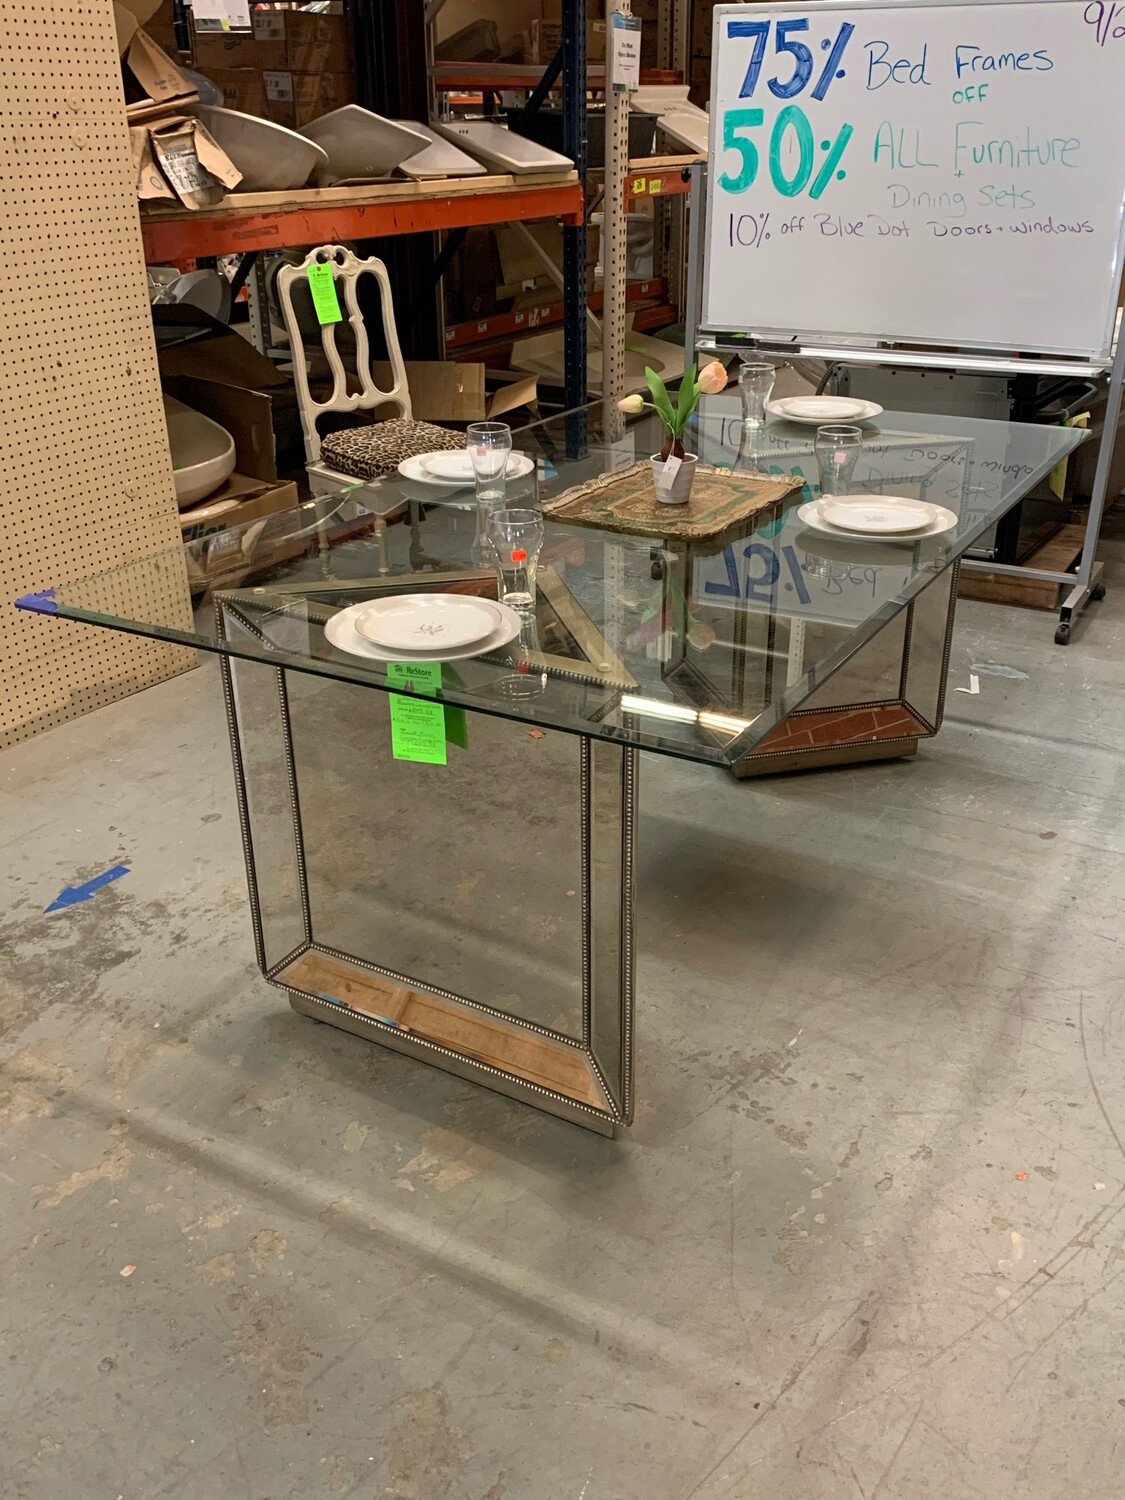 Basset Mirror Murano Dining Table(NO CHAIRS)